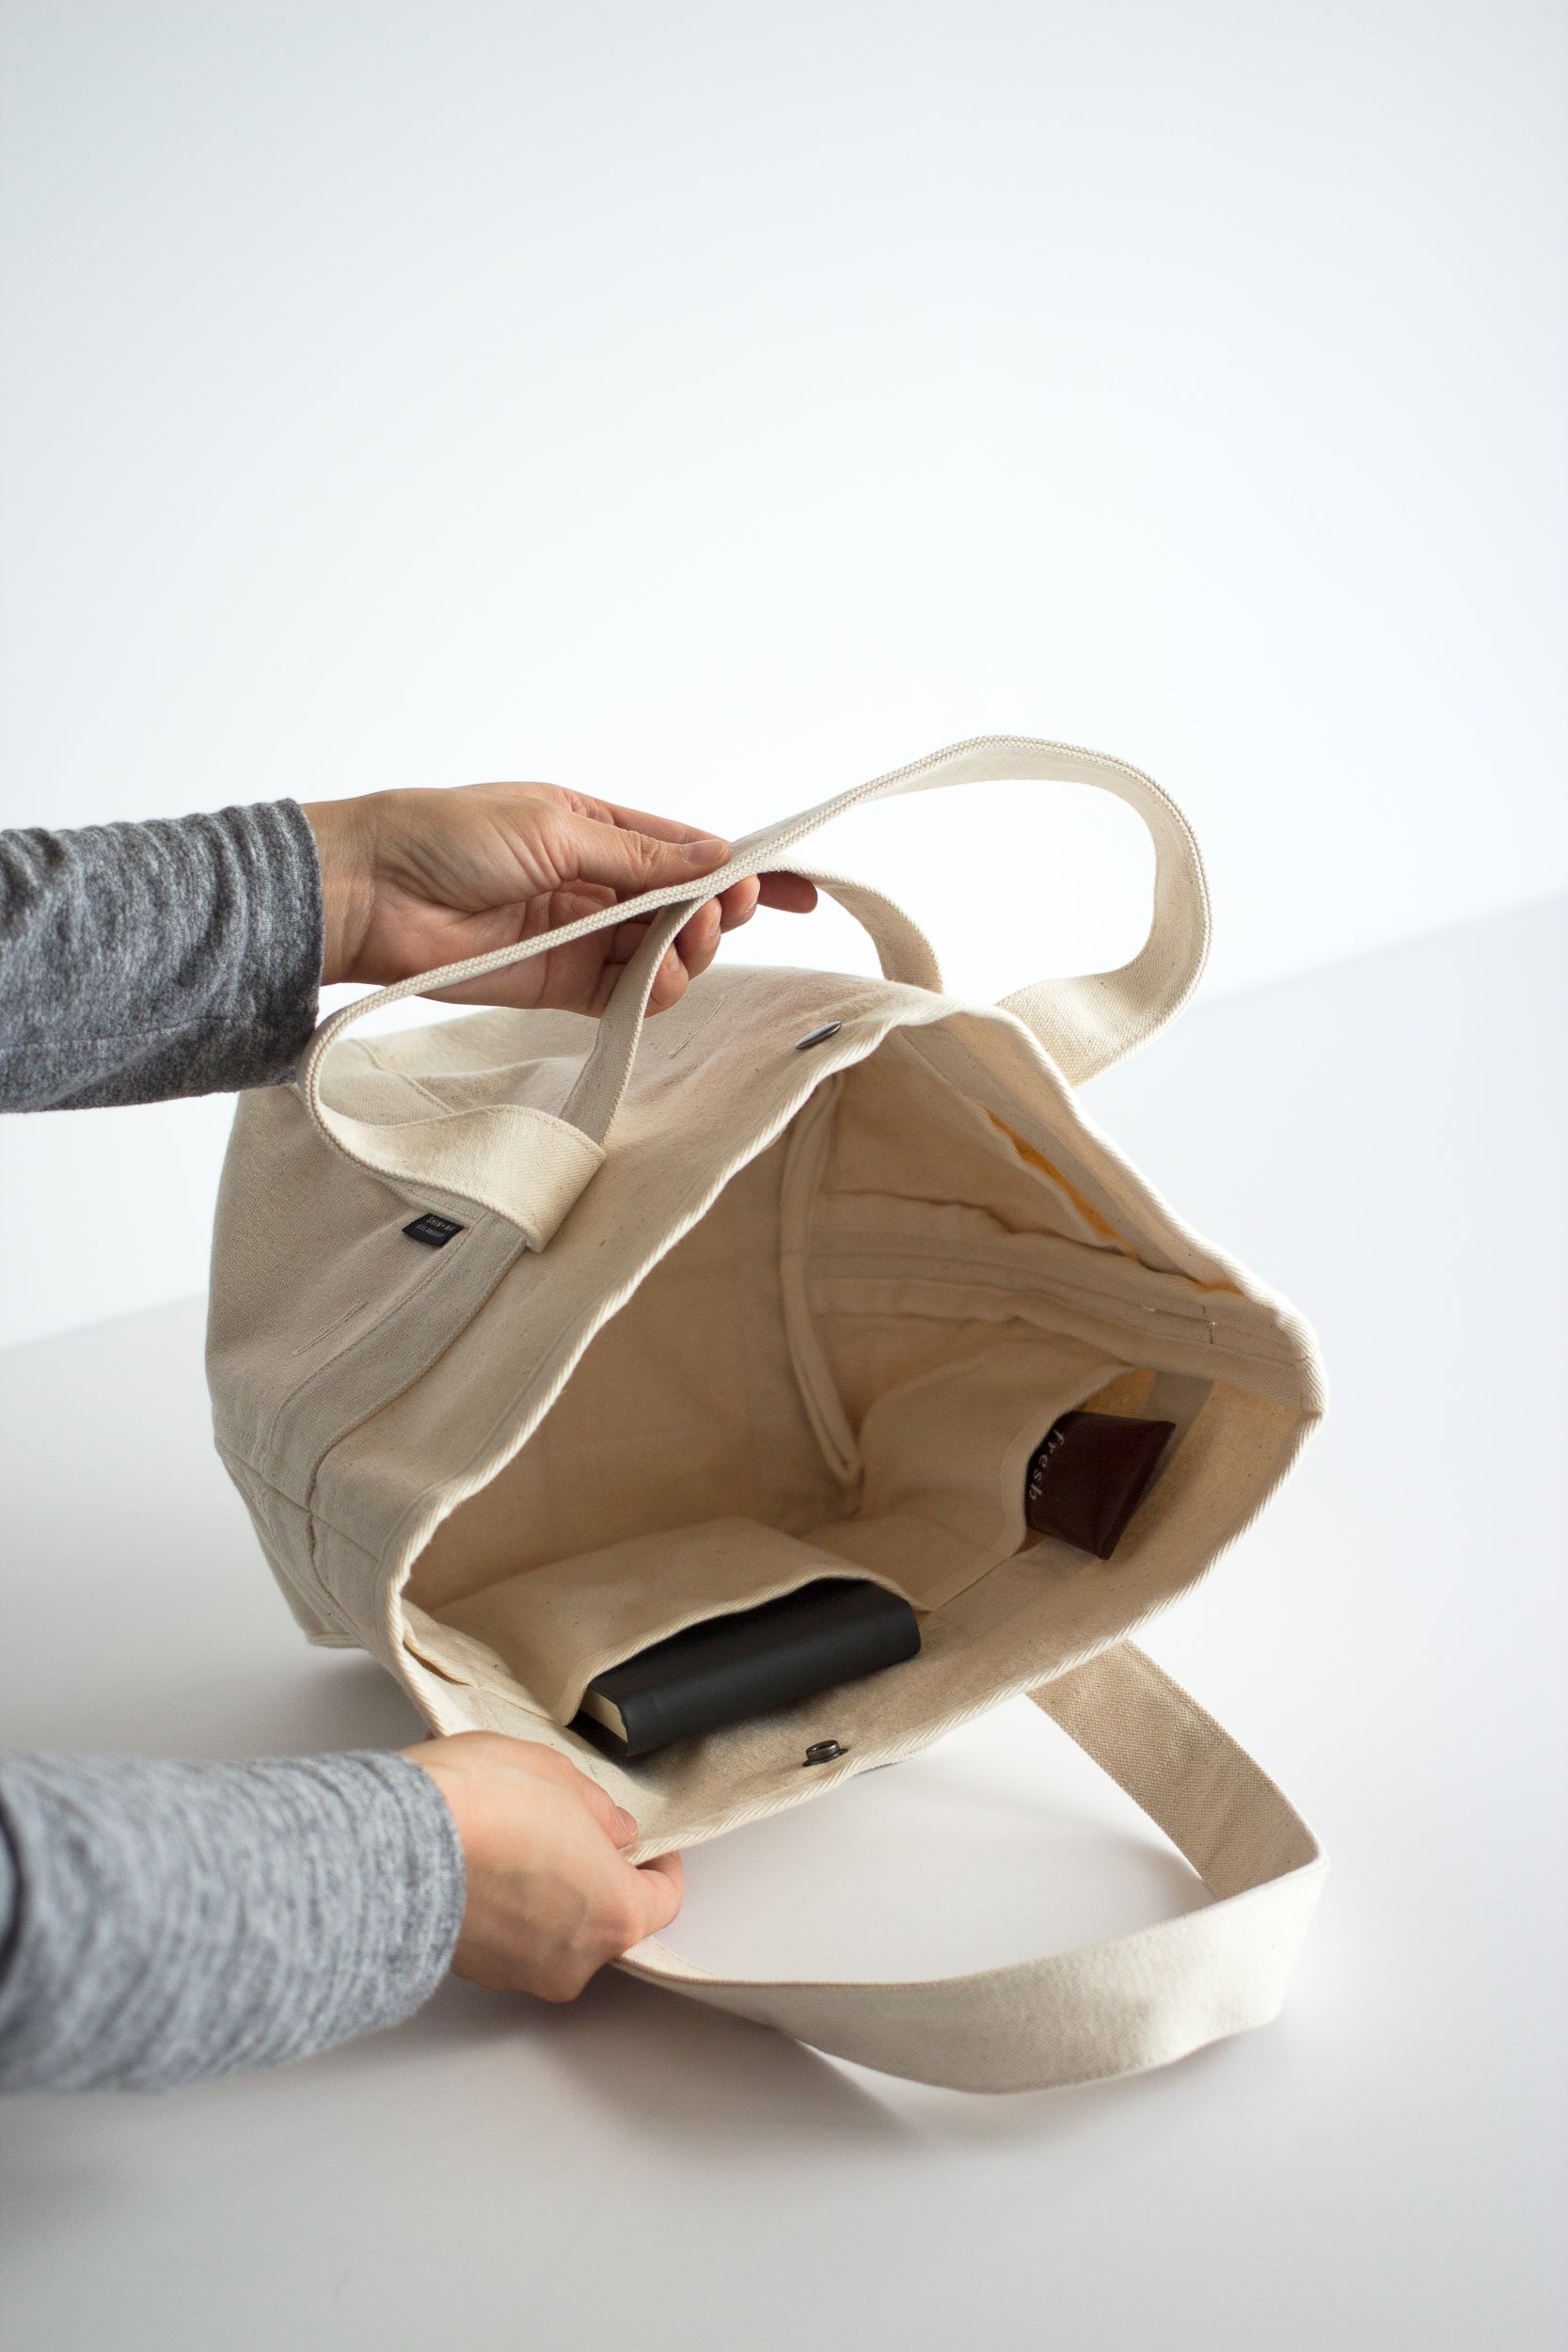 Showing built-in pockets are used to organize the Day Tote